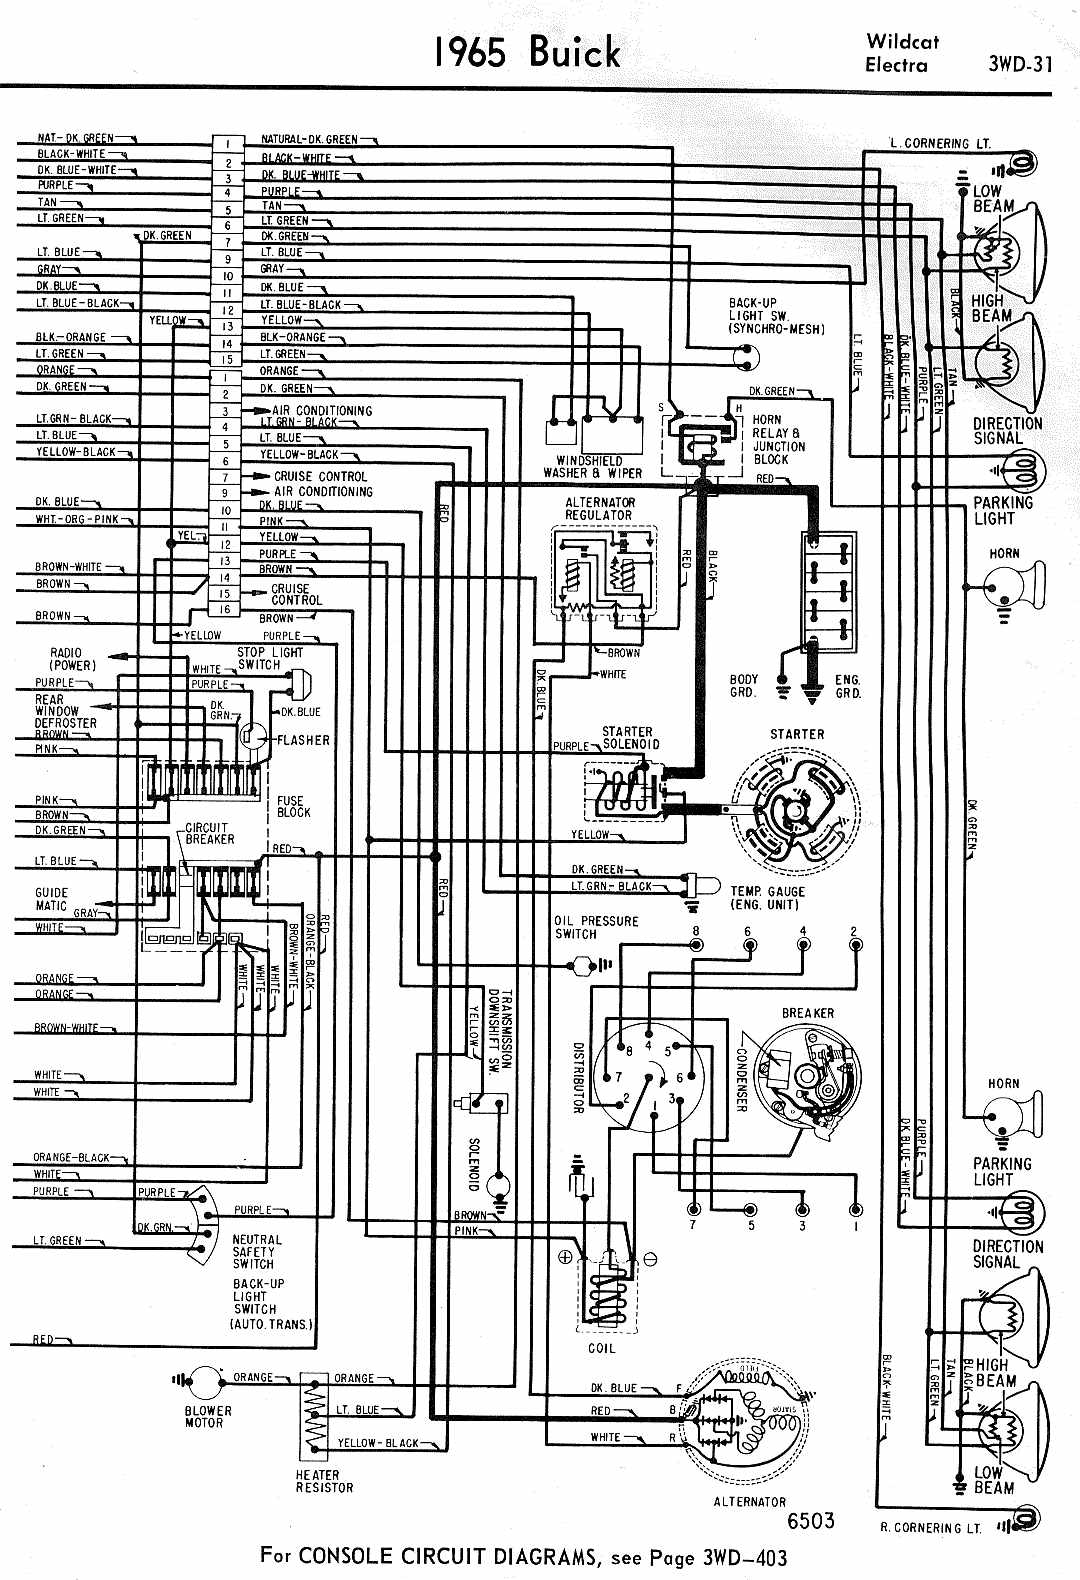 2003 Buick Rendezvous Fuse Box Diagram Image 74 2005 Window Wiring Diagrams Free Download Car Manuals Pdf Fault Codes Rh Automotive Net Coolant 2004 Panel